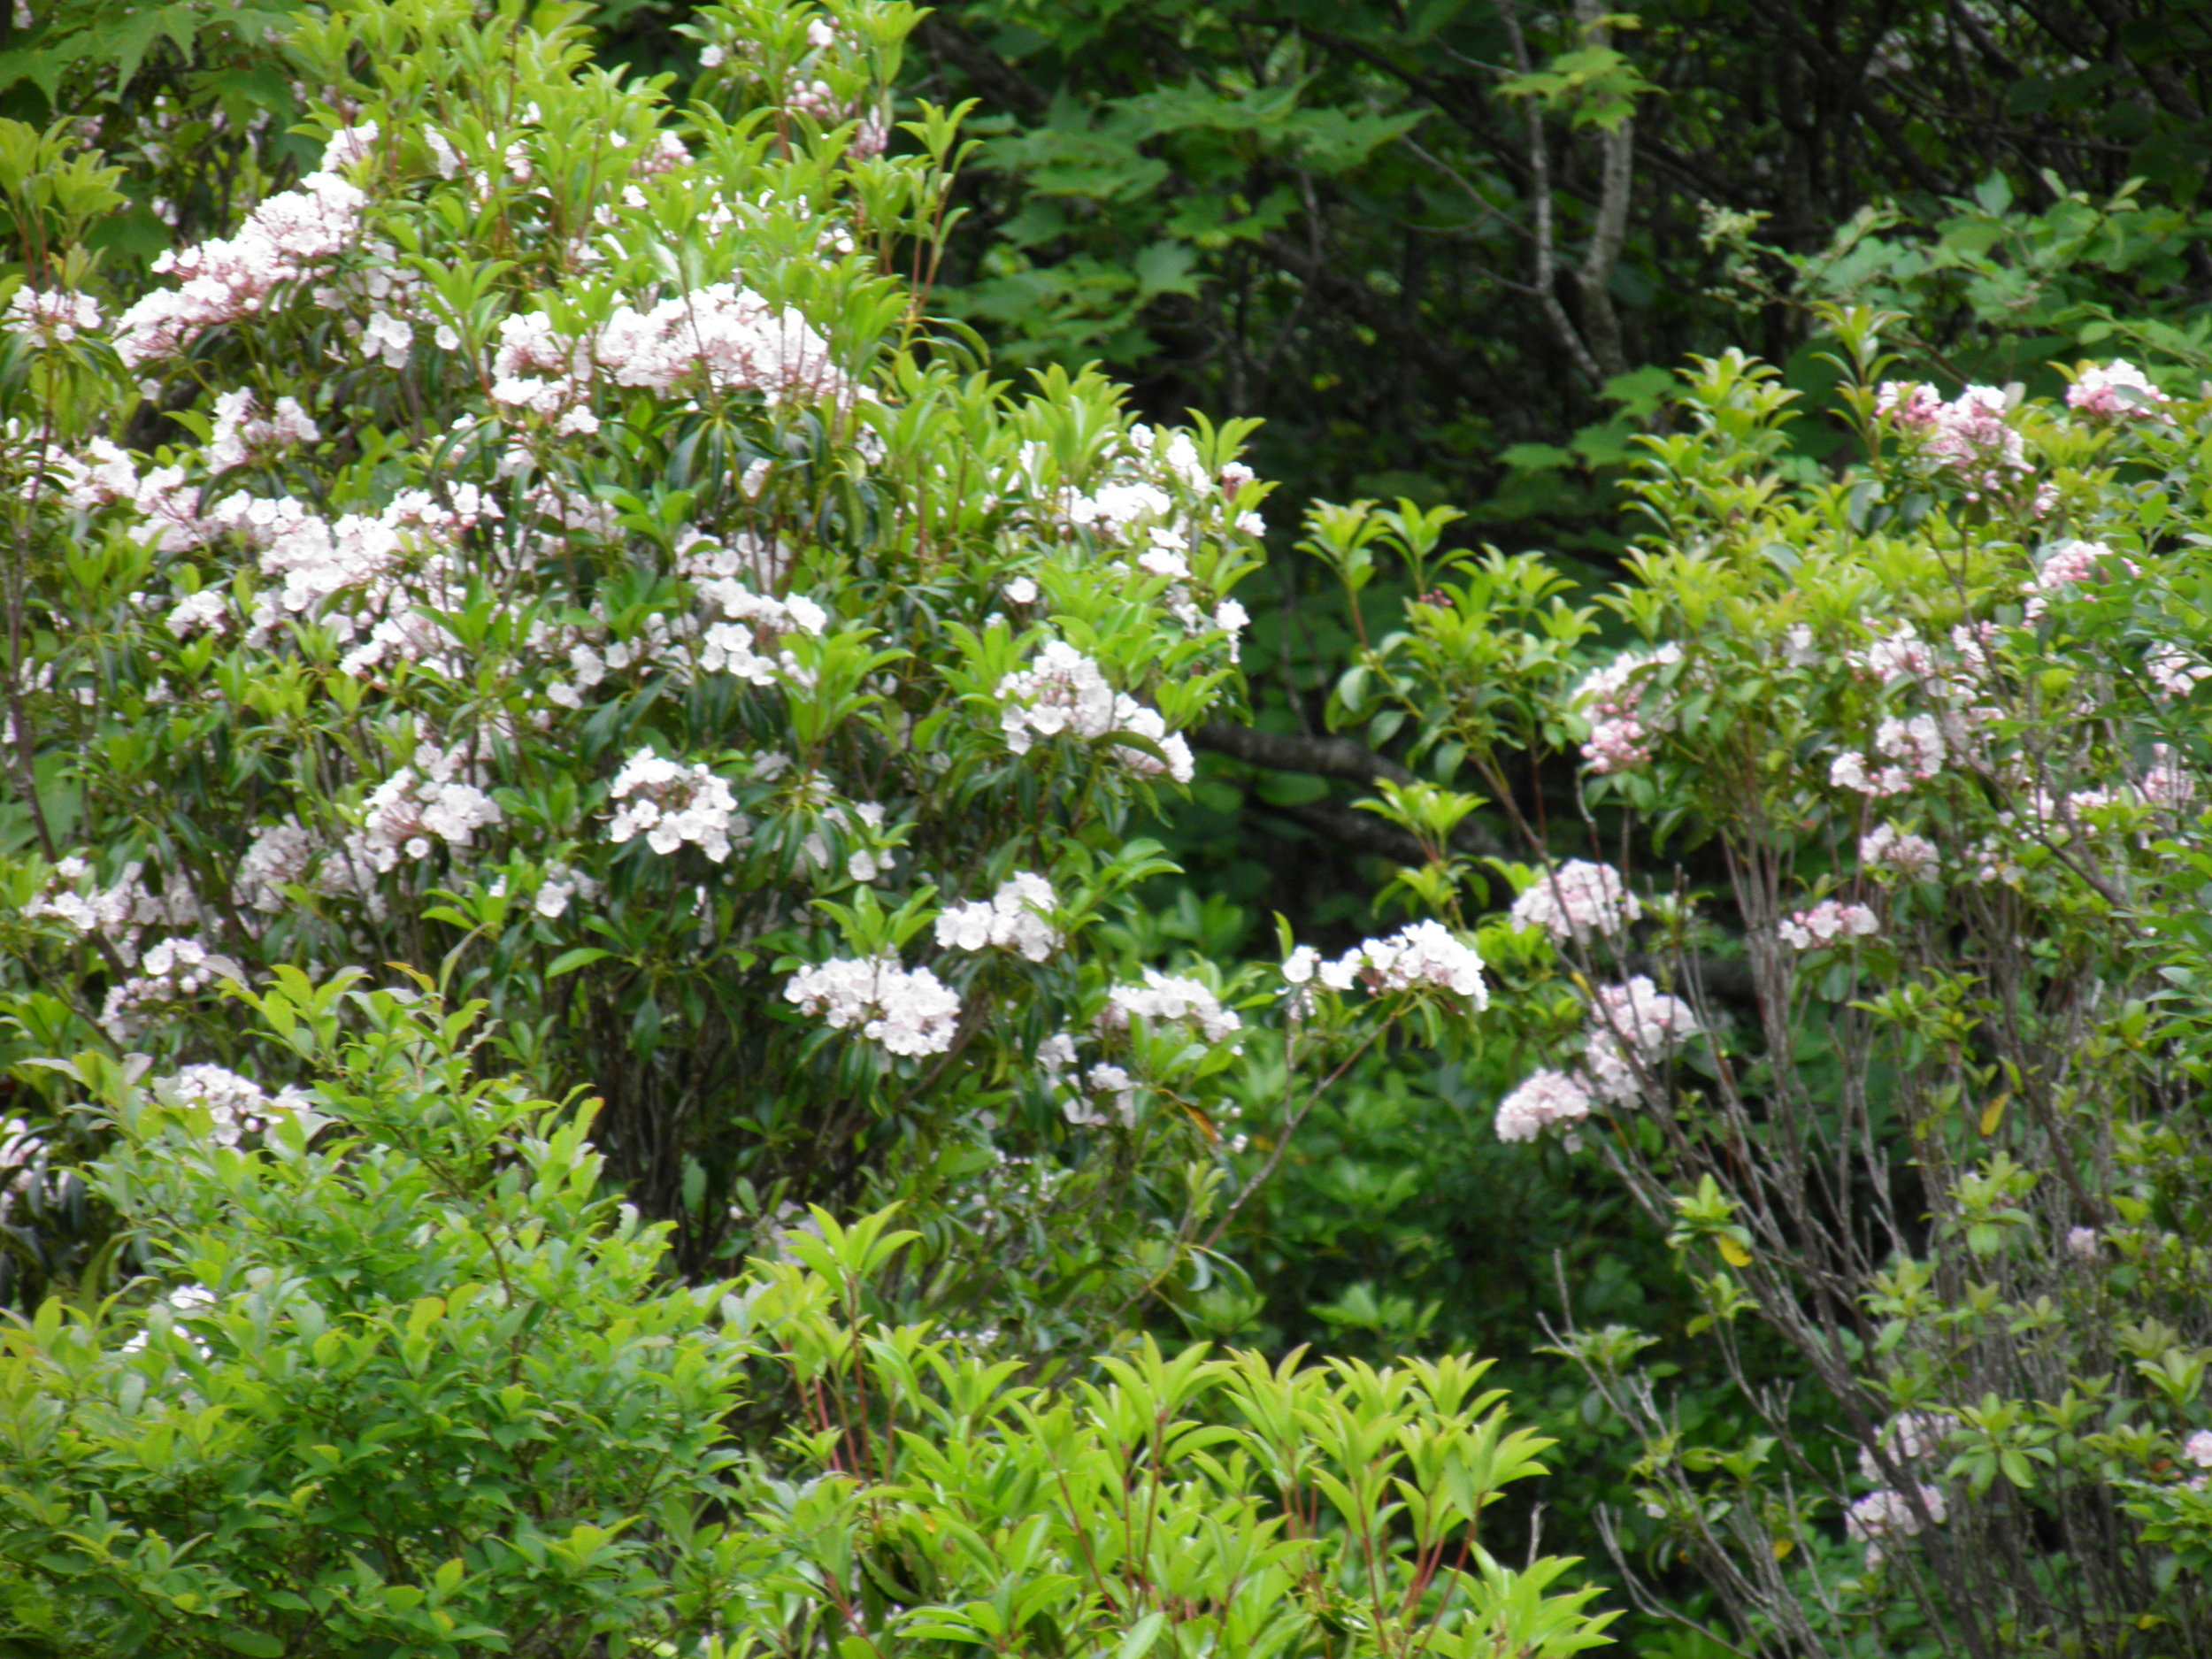 mountain laurel - A 2.5 mile hike on the Rhododendron Gap Trail within Grayson Highlands State Park. This hike offers many chances to view wildflowers, including mountain laurel and rhododendron. It also offers many large rock outcroppings for you to explore and photograph. Typically the end of May and first three weeks of June are the best blooming times. Total time for this hike including transportation will be 4-5 hrs. Snacks, water, and park entrance fee included.